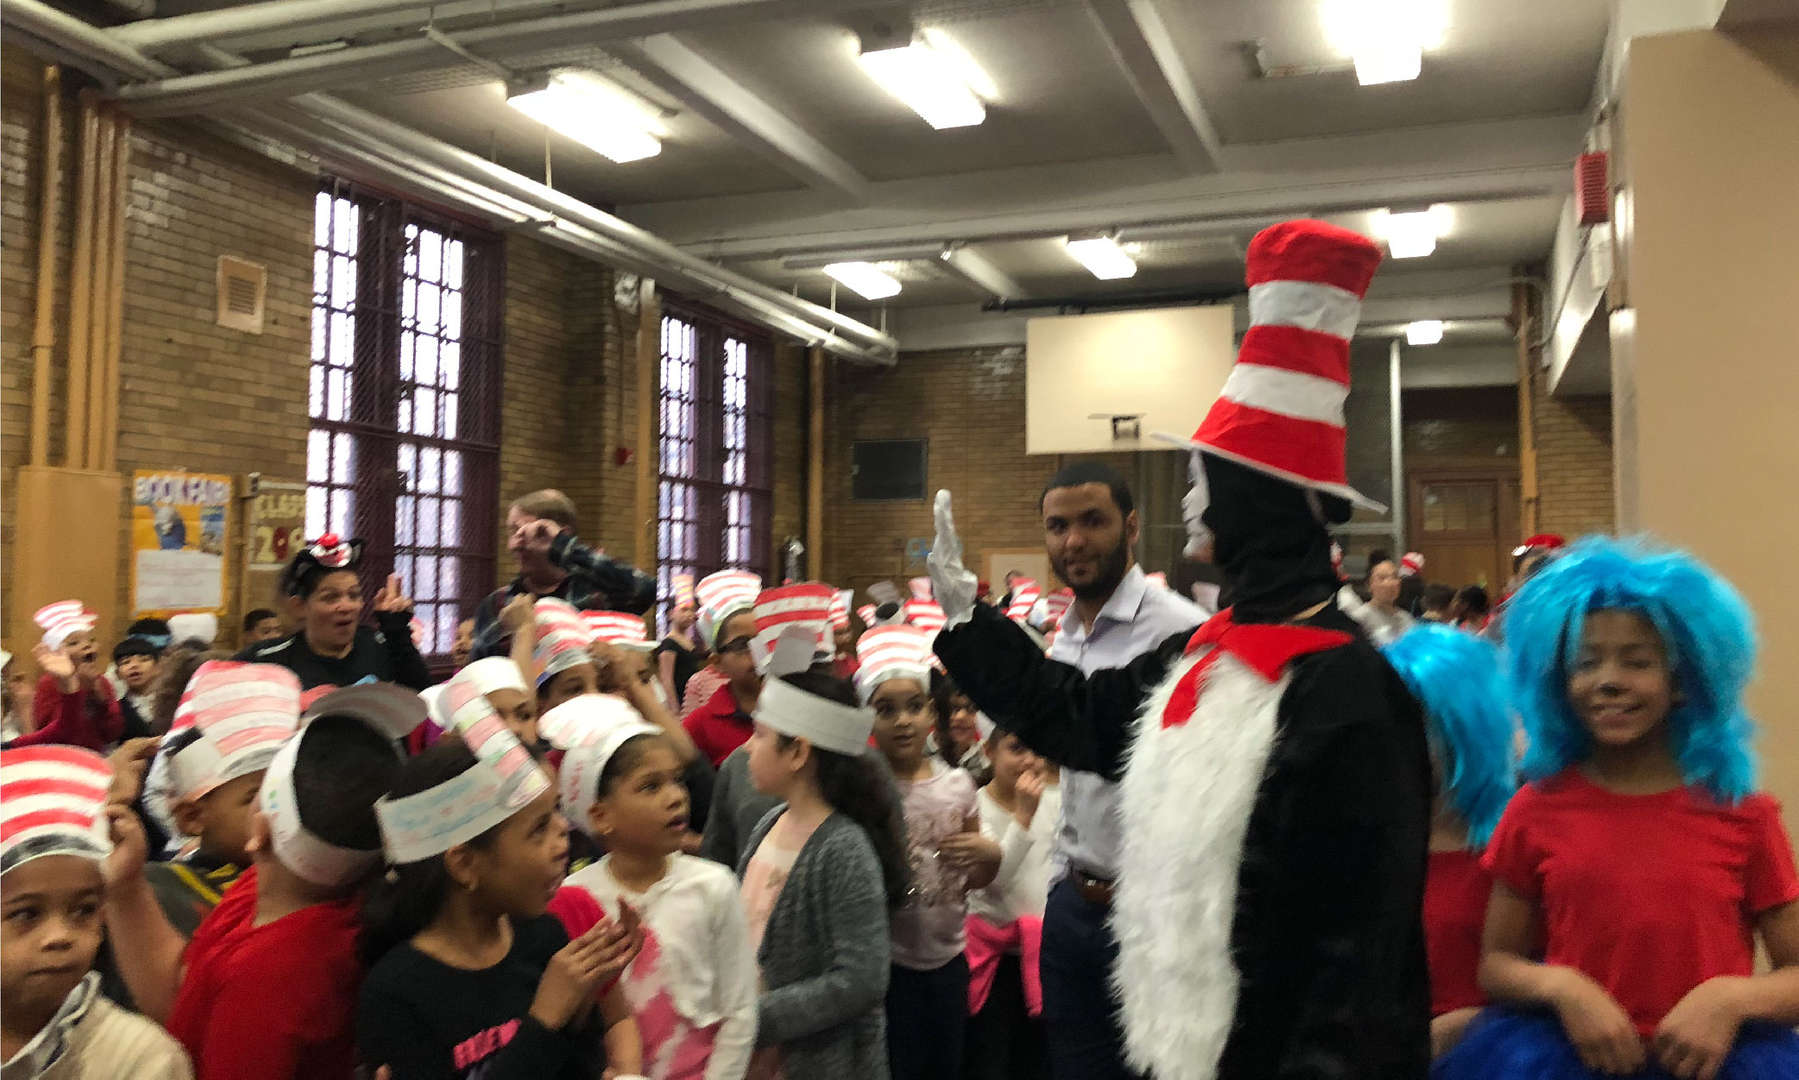 Students and teachers dressed up for Dr. Seuss Day